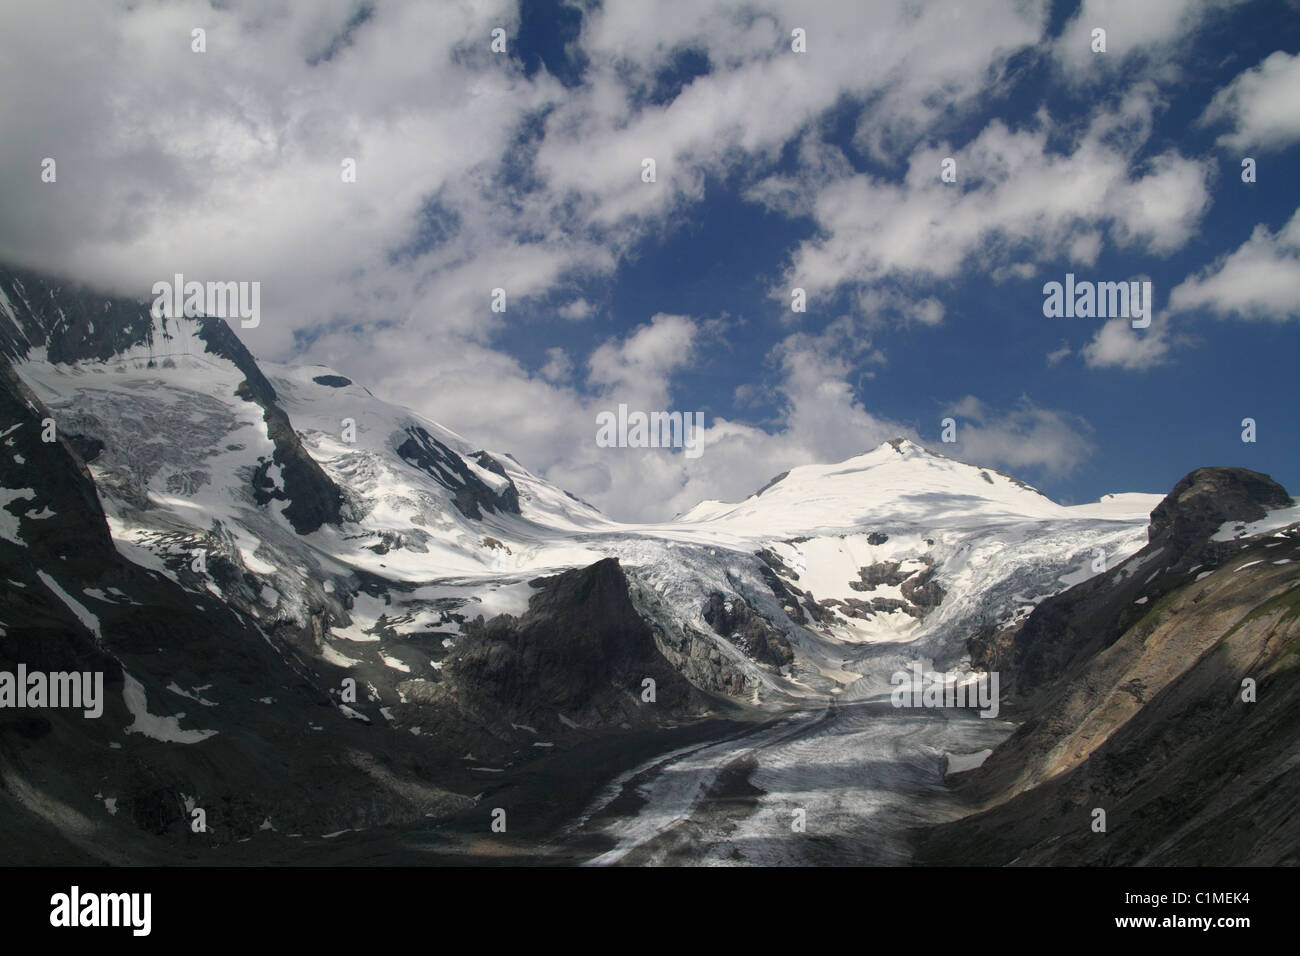 The Pasterze Glacier (is the longest glacier in Austria) at the Hohe Tauern National Parc Carinthia, Austria Stock Photo